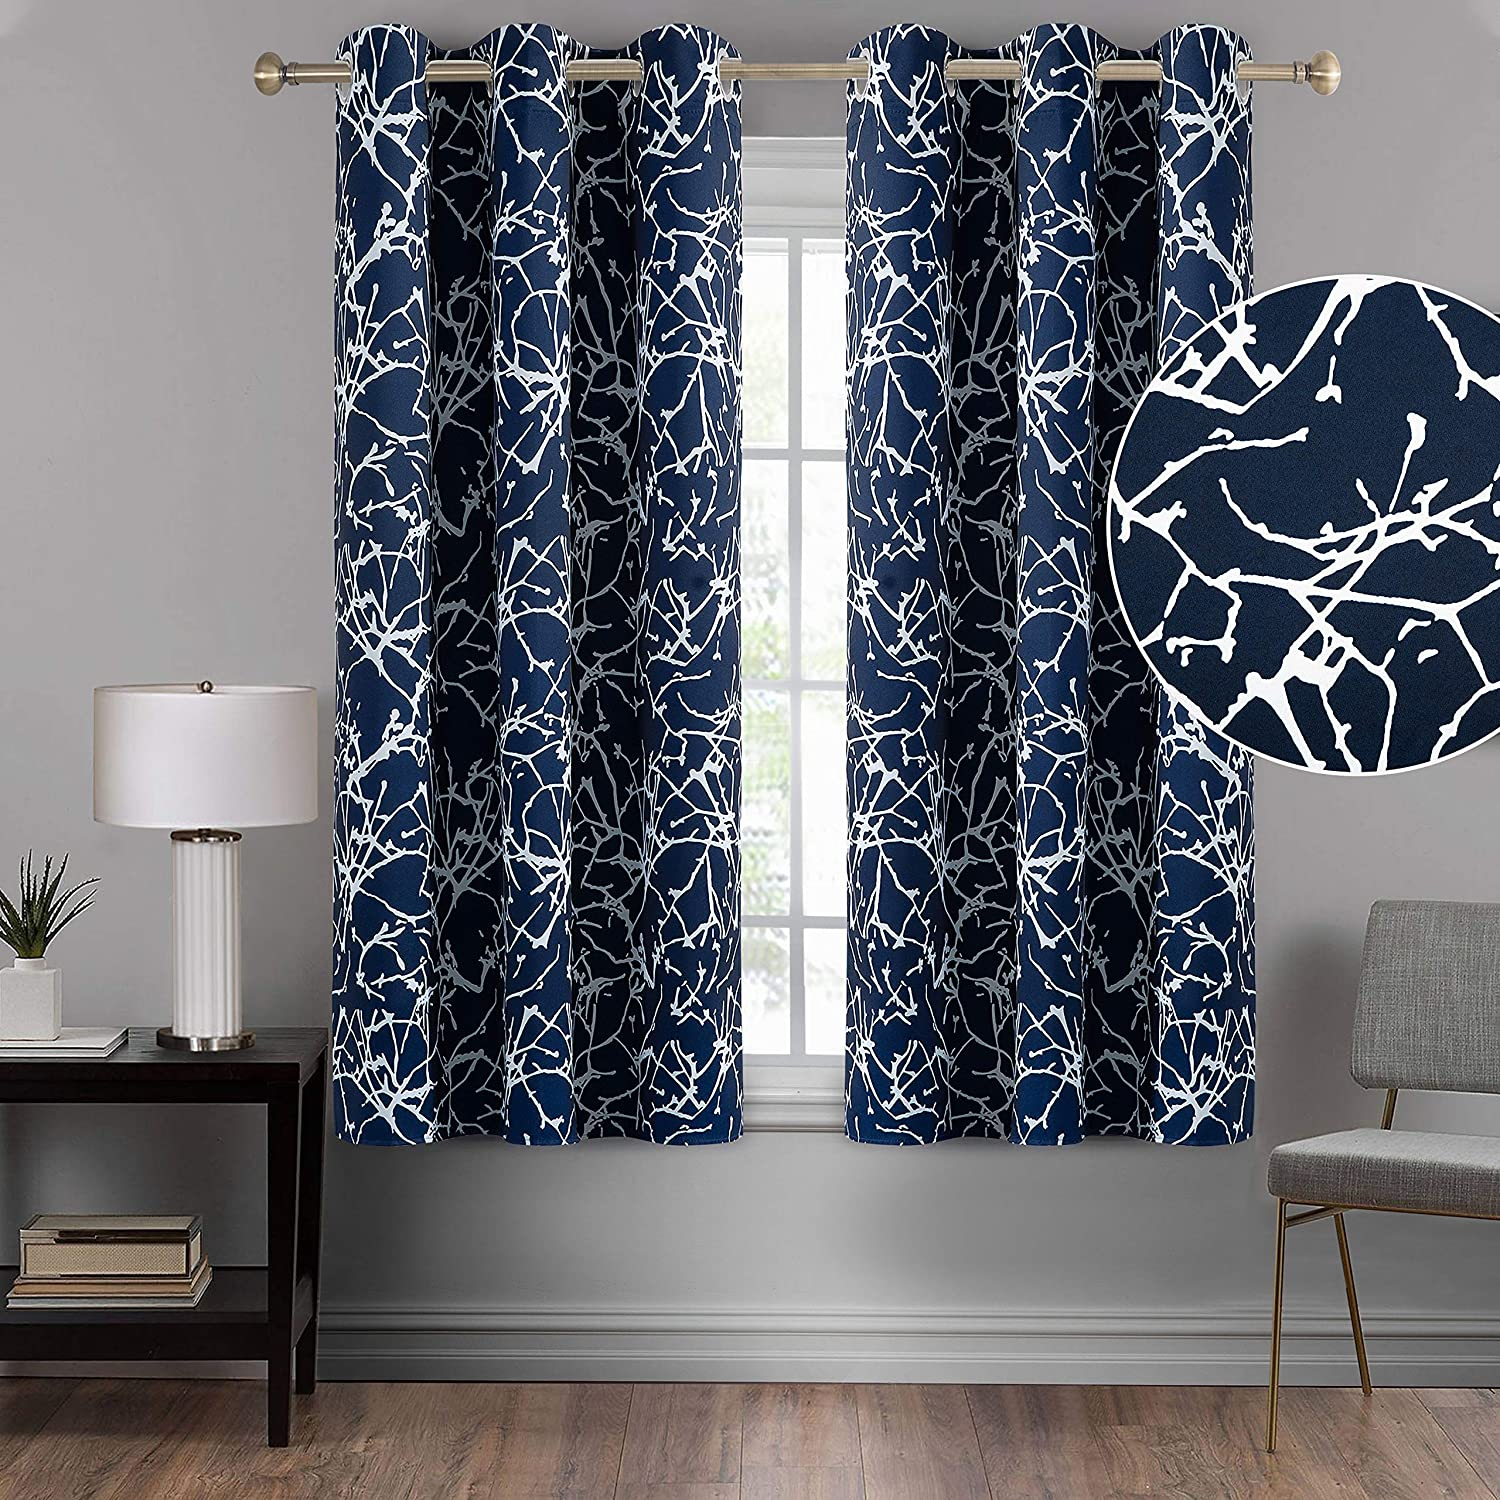 Calimodo Navy Blue Blackout Curtains 42 x 54 Inches for Living Room Tree Branches Printed Grommets Thermal Insulated & Darkening Window Drapes for Home, Hotel, Office and Dorm(2 Panels)